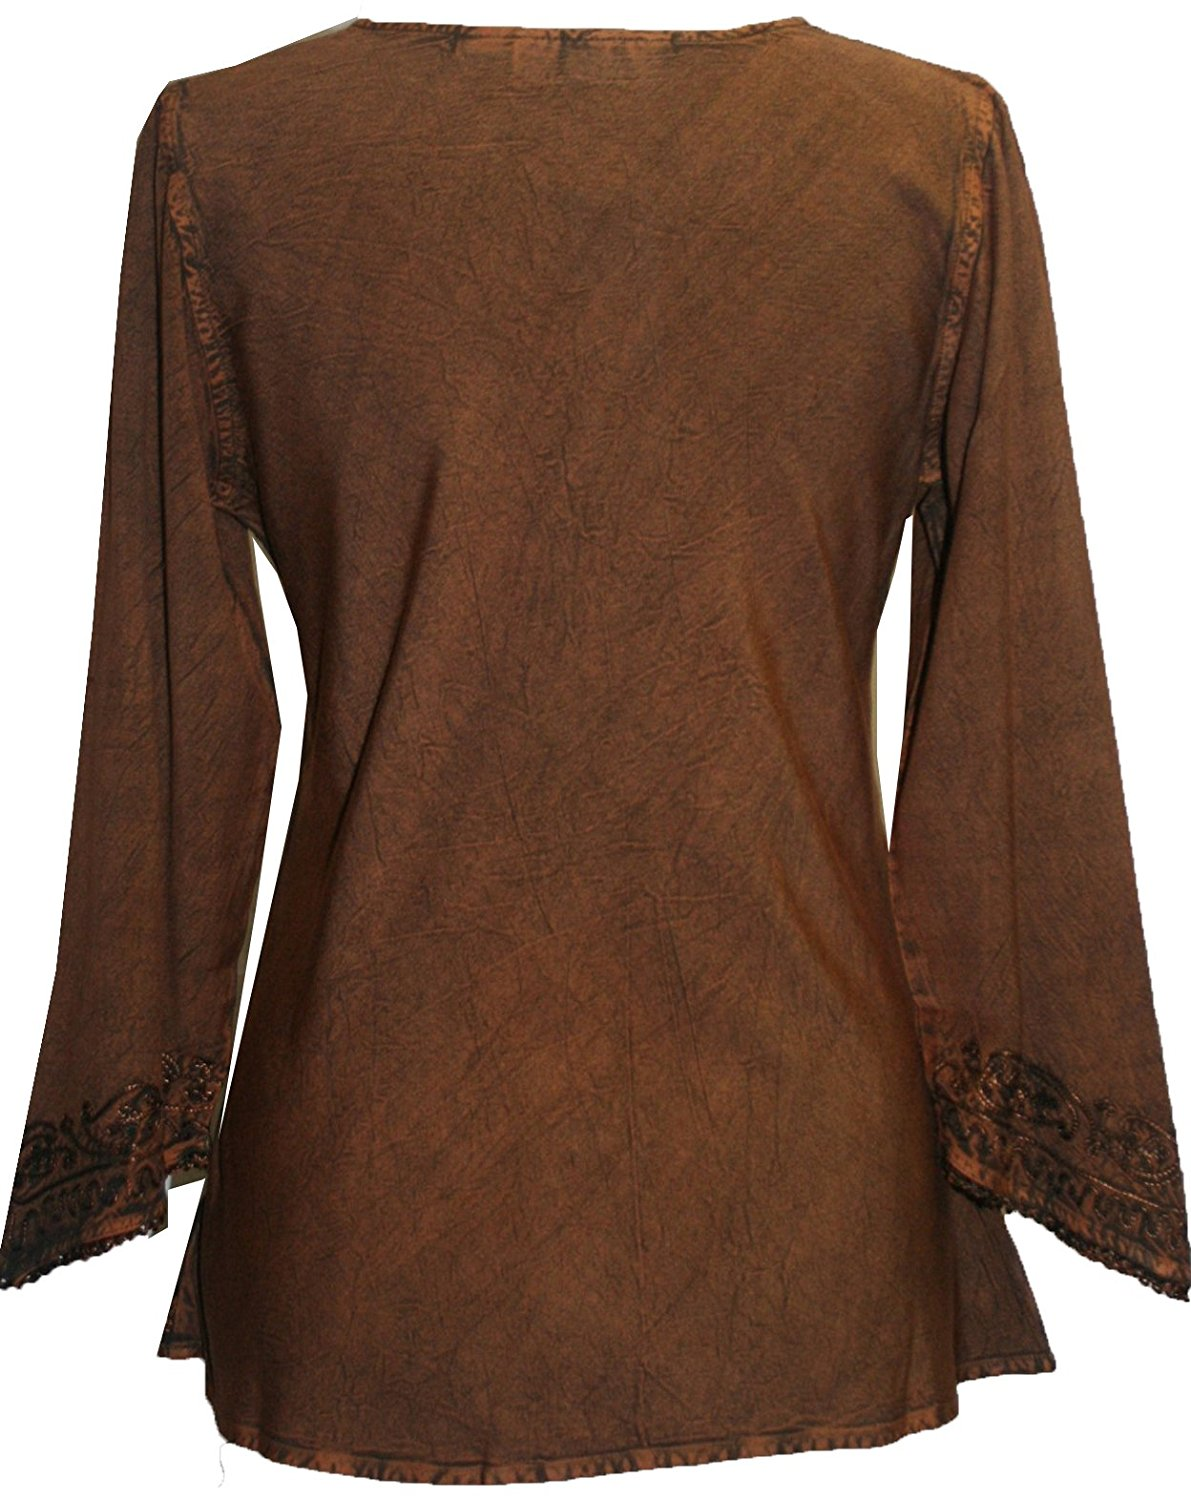 Embroidered Rayon Renaissance Blouse - Agan Traders, Rust